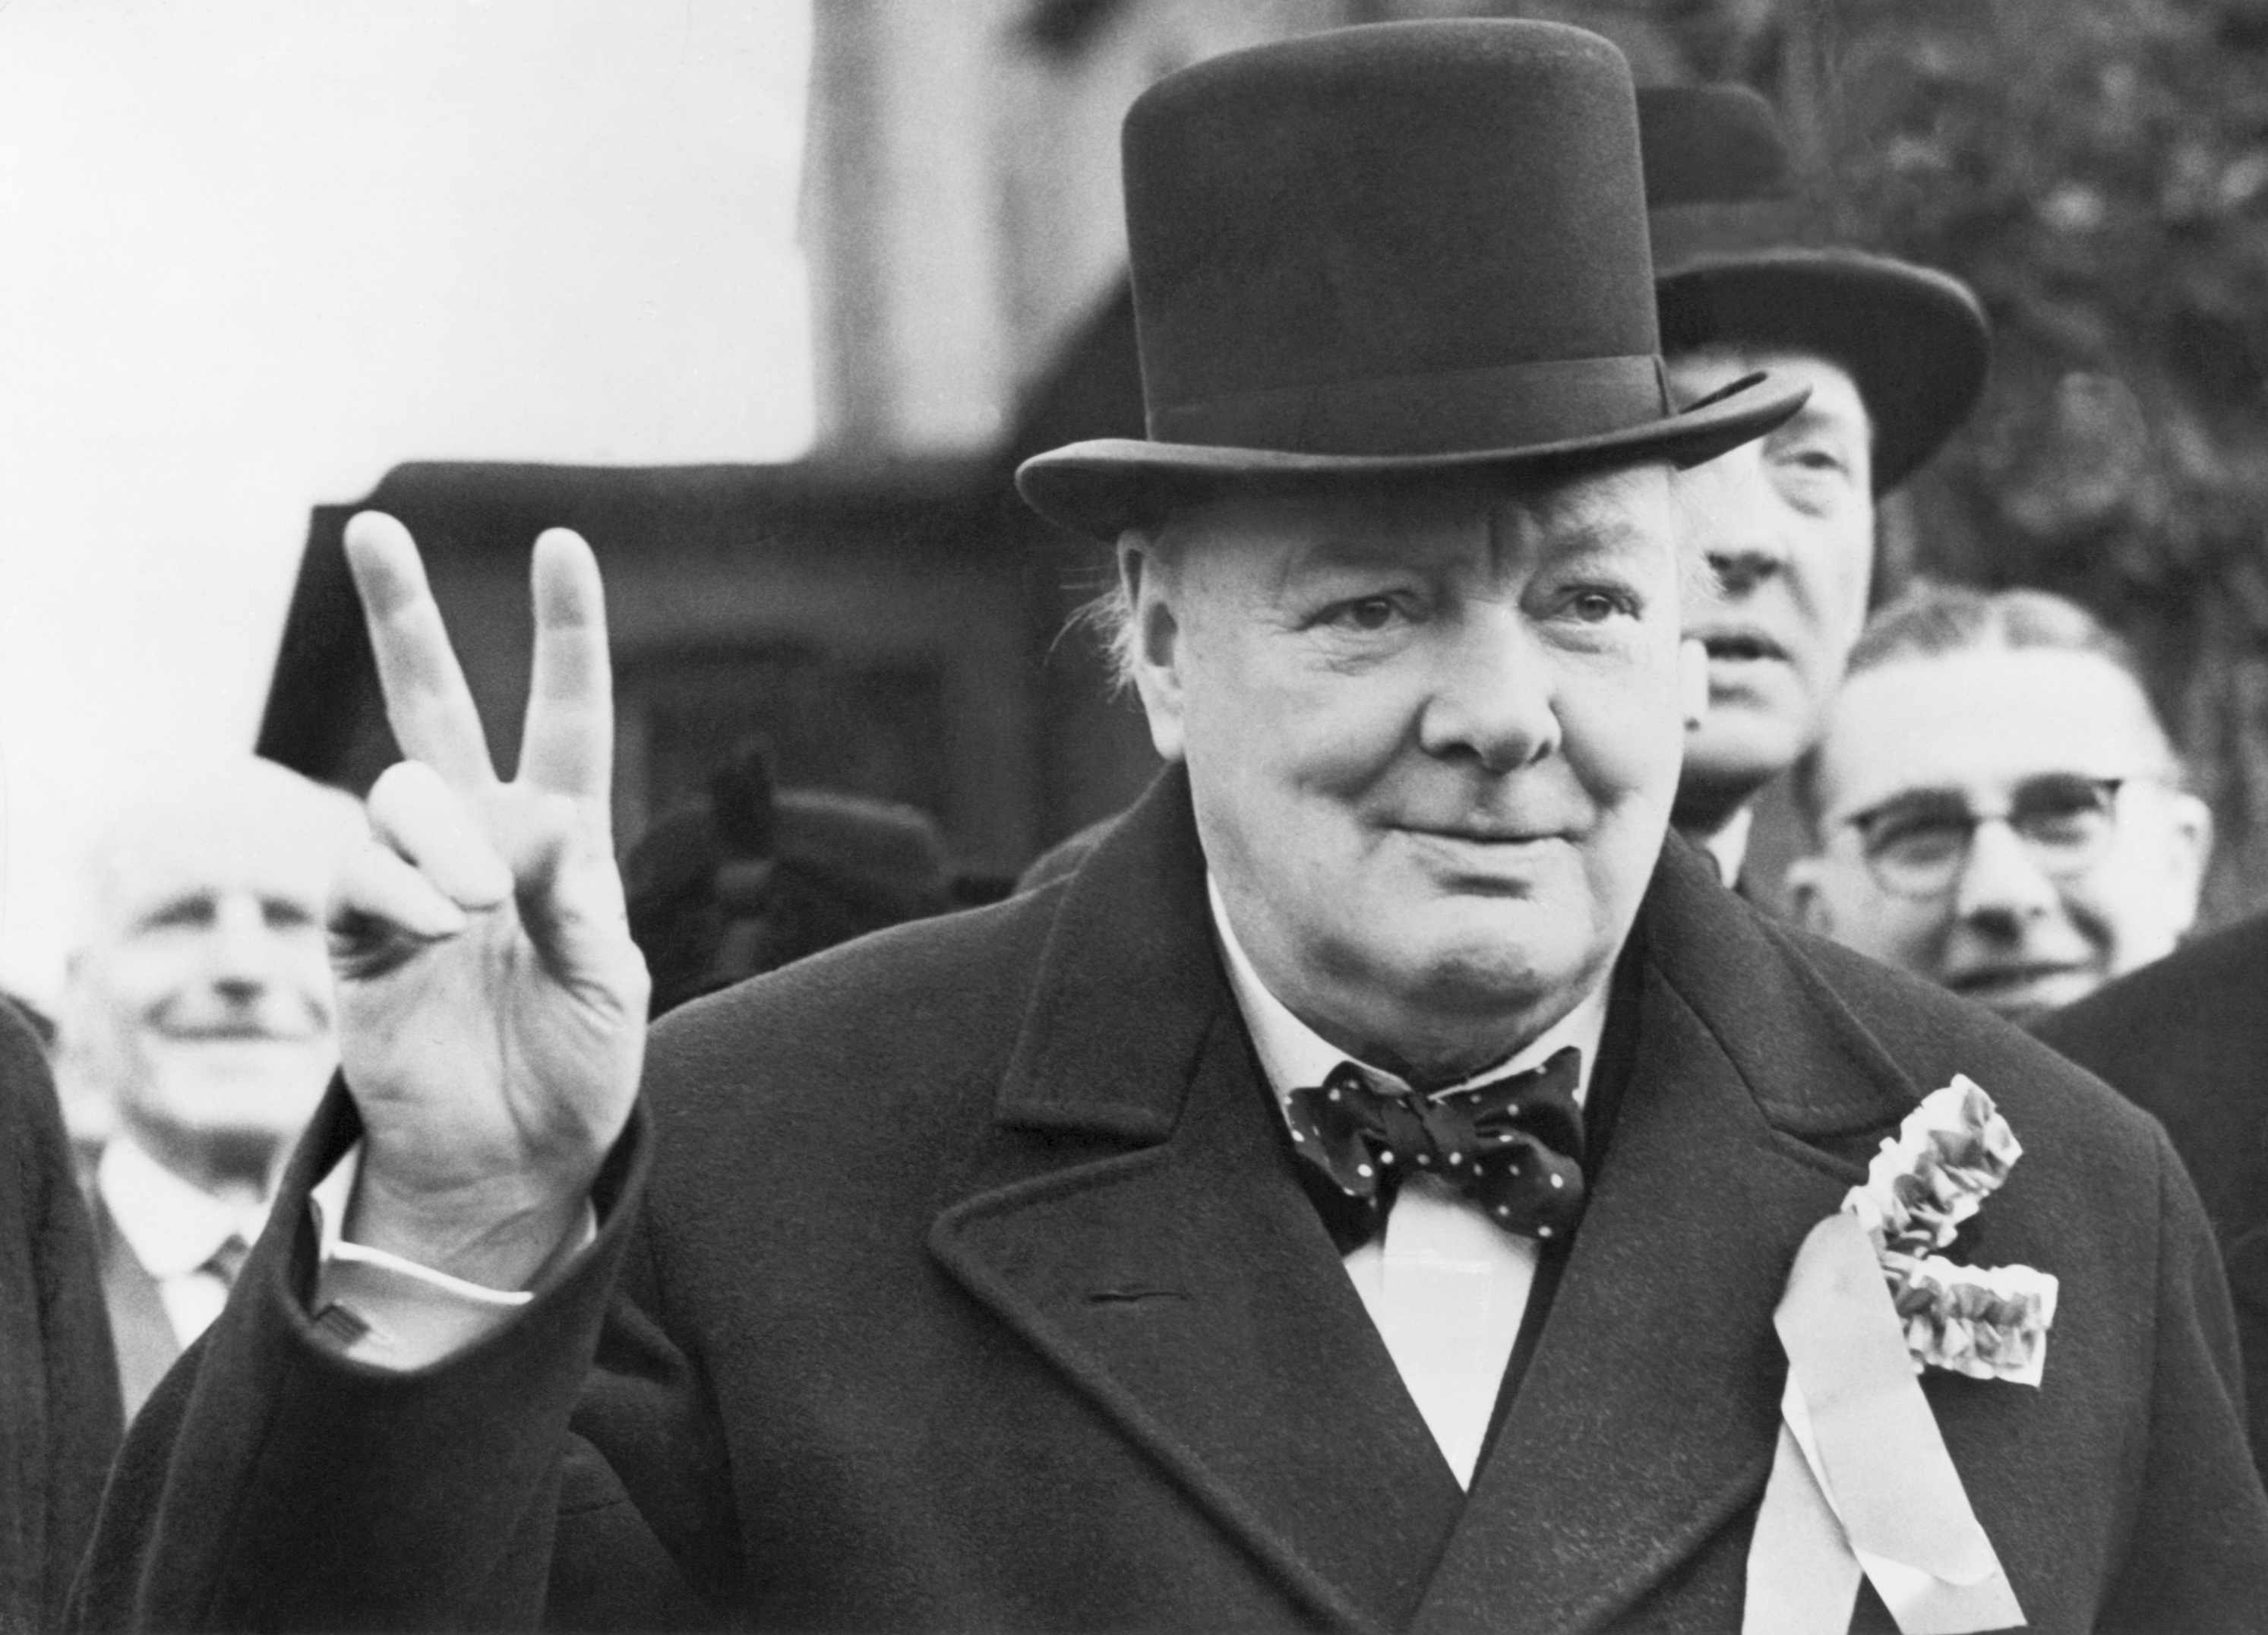 Winston Churchill, former prime minister of the United Kingdom, gives his 'victory' sign while making a polling day tour of his constituency during an election. (Getty Images)